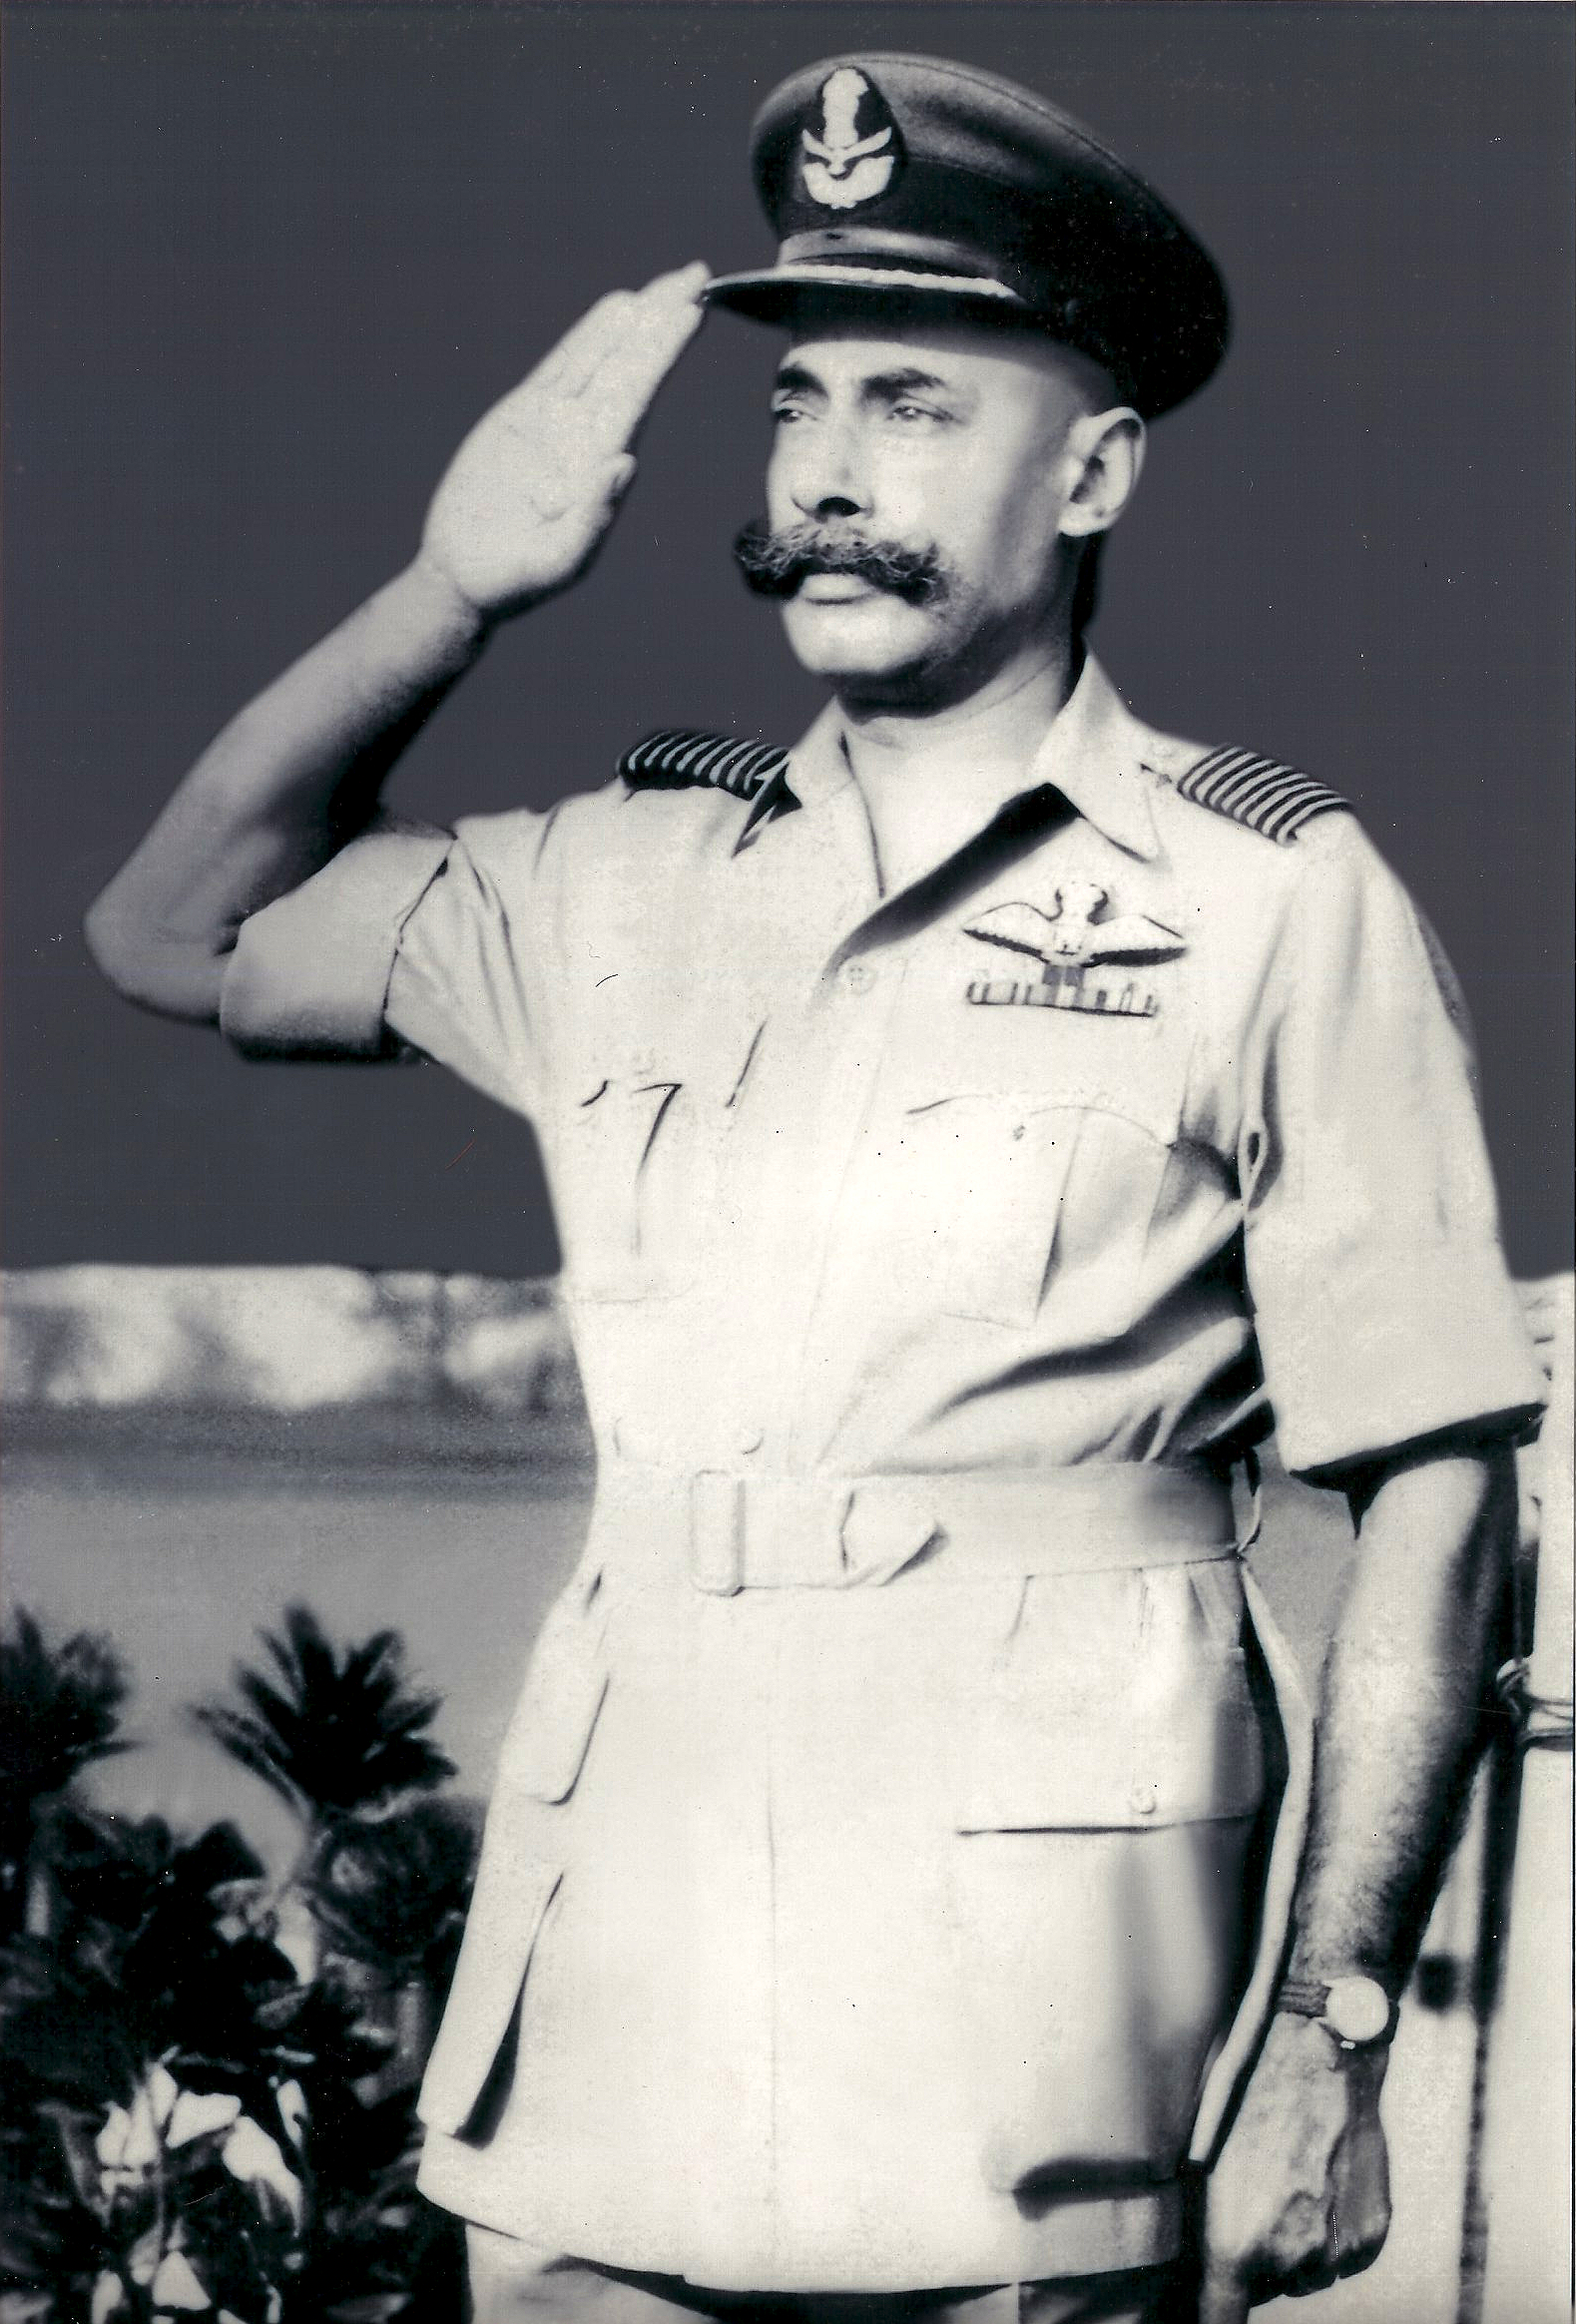 My grandfather: (late) Group Captain S.K. Mukerji